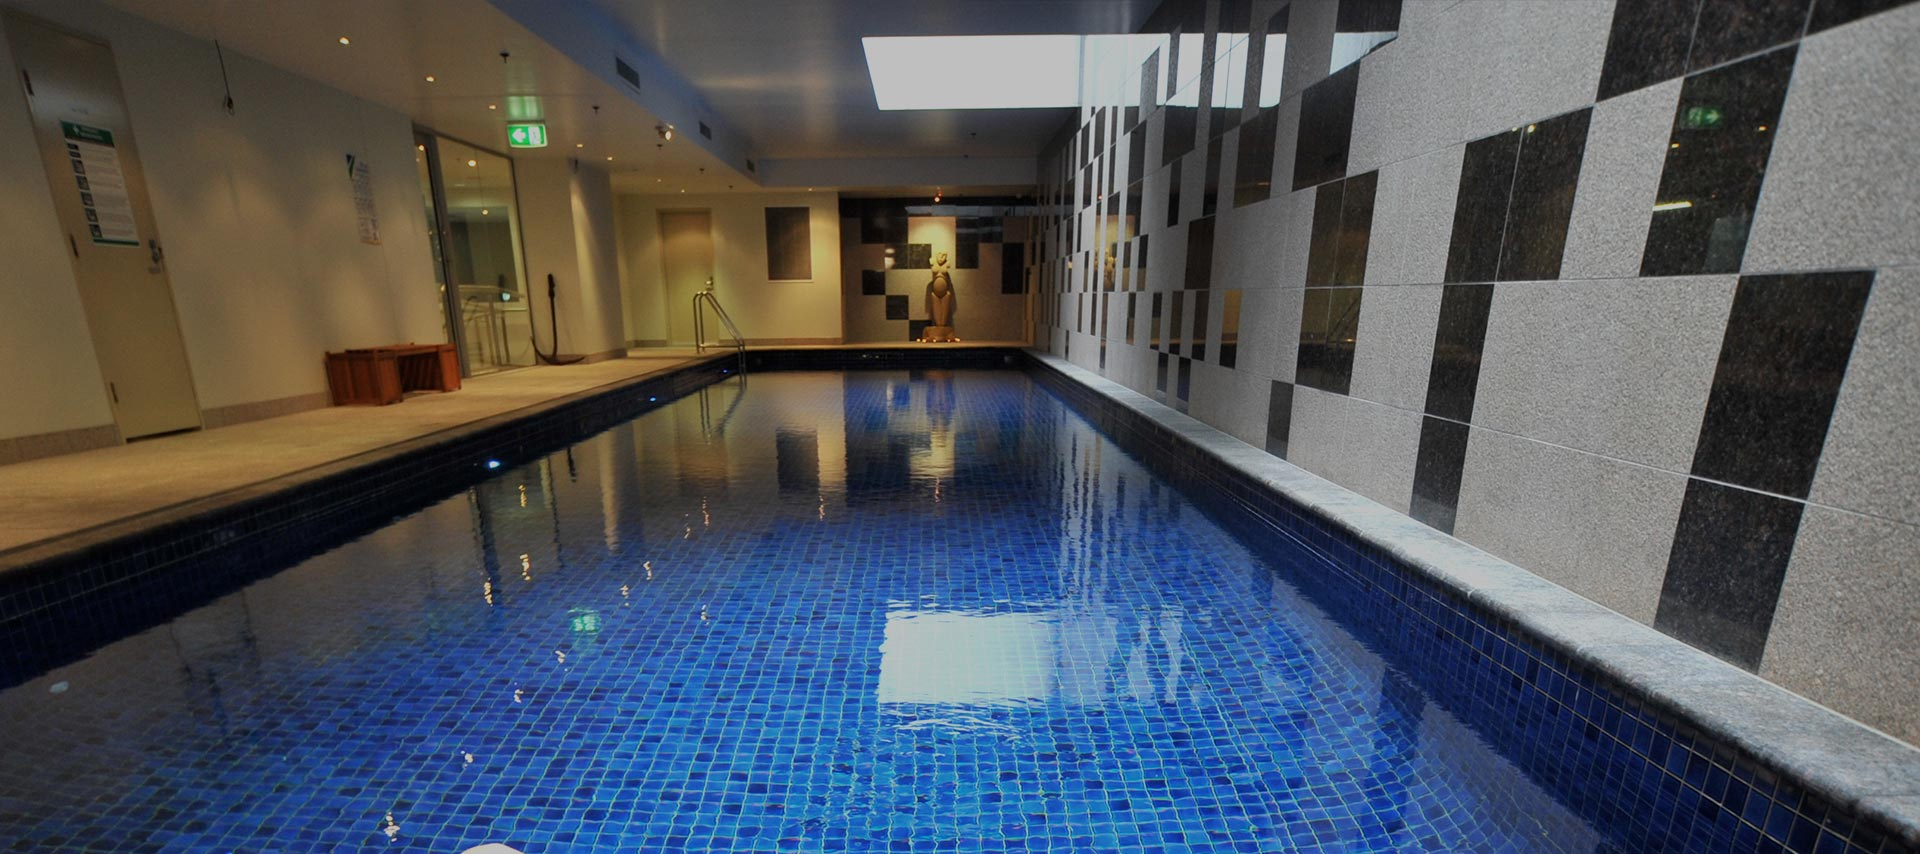 The pool at Aquarius Health + Medispa Brisbane